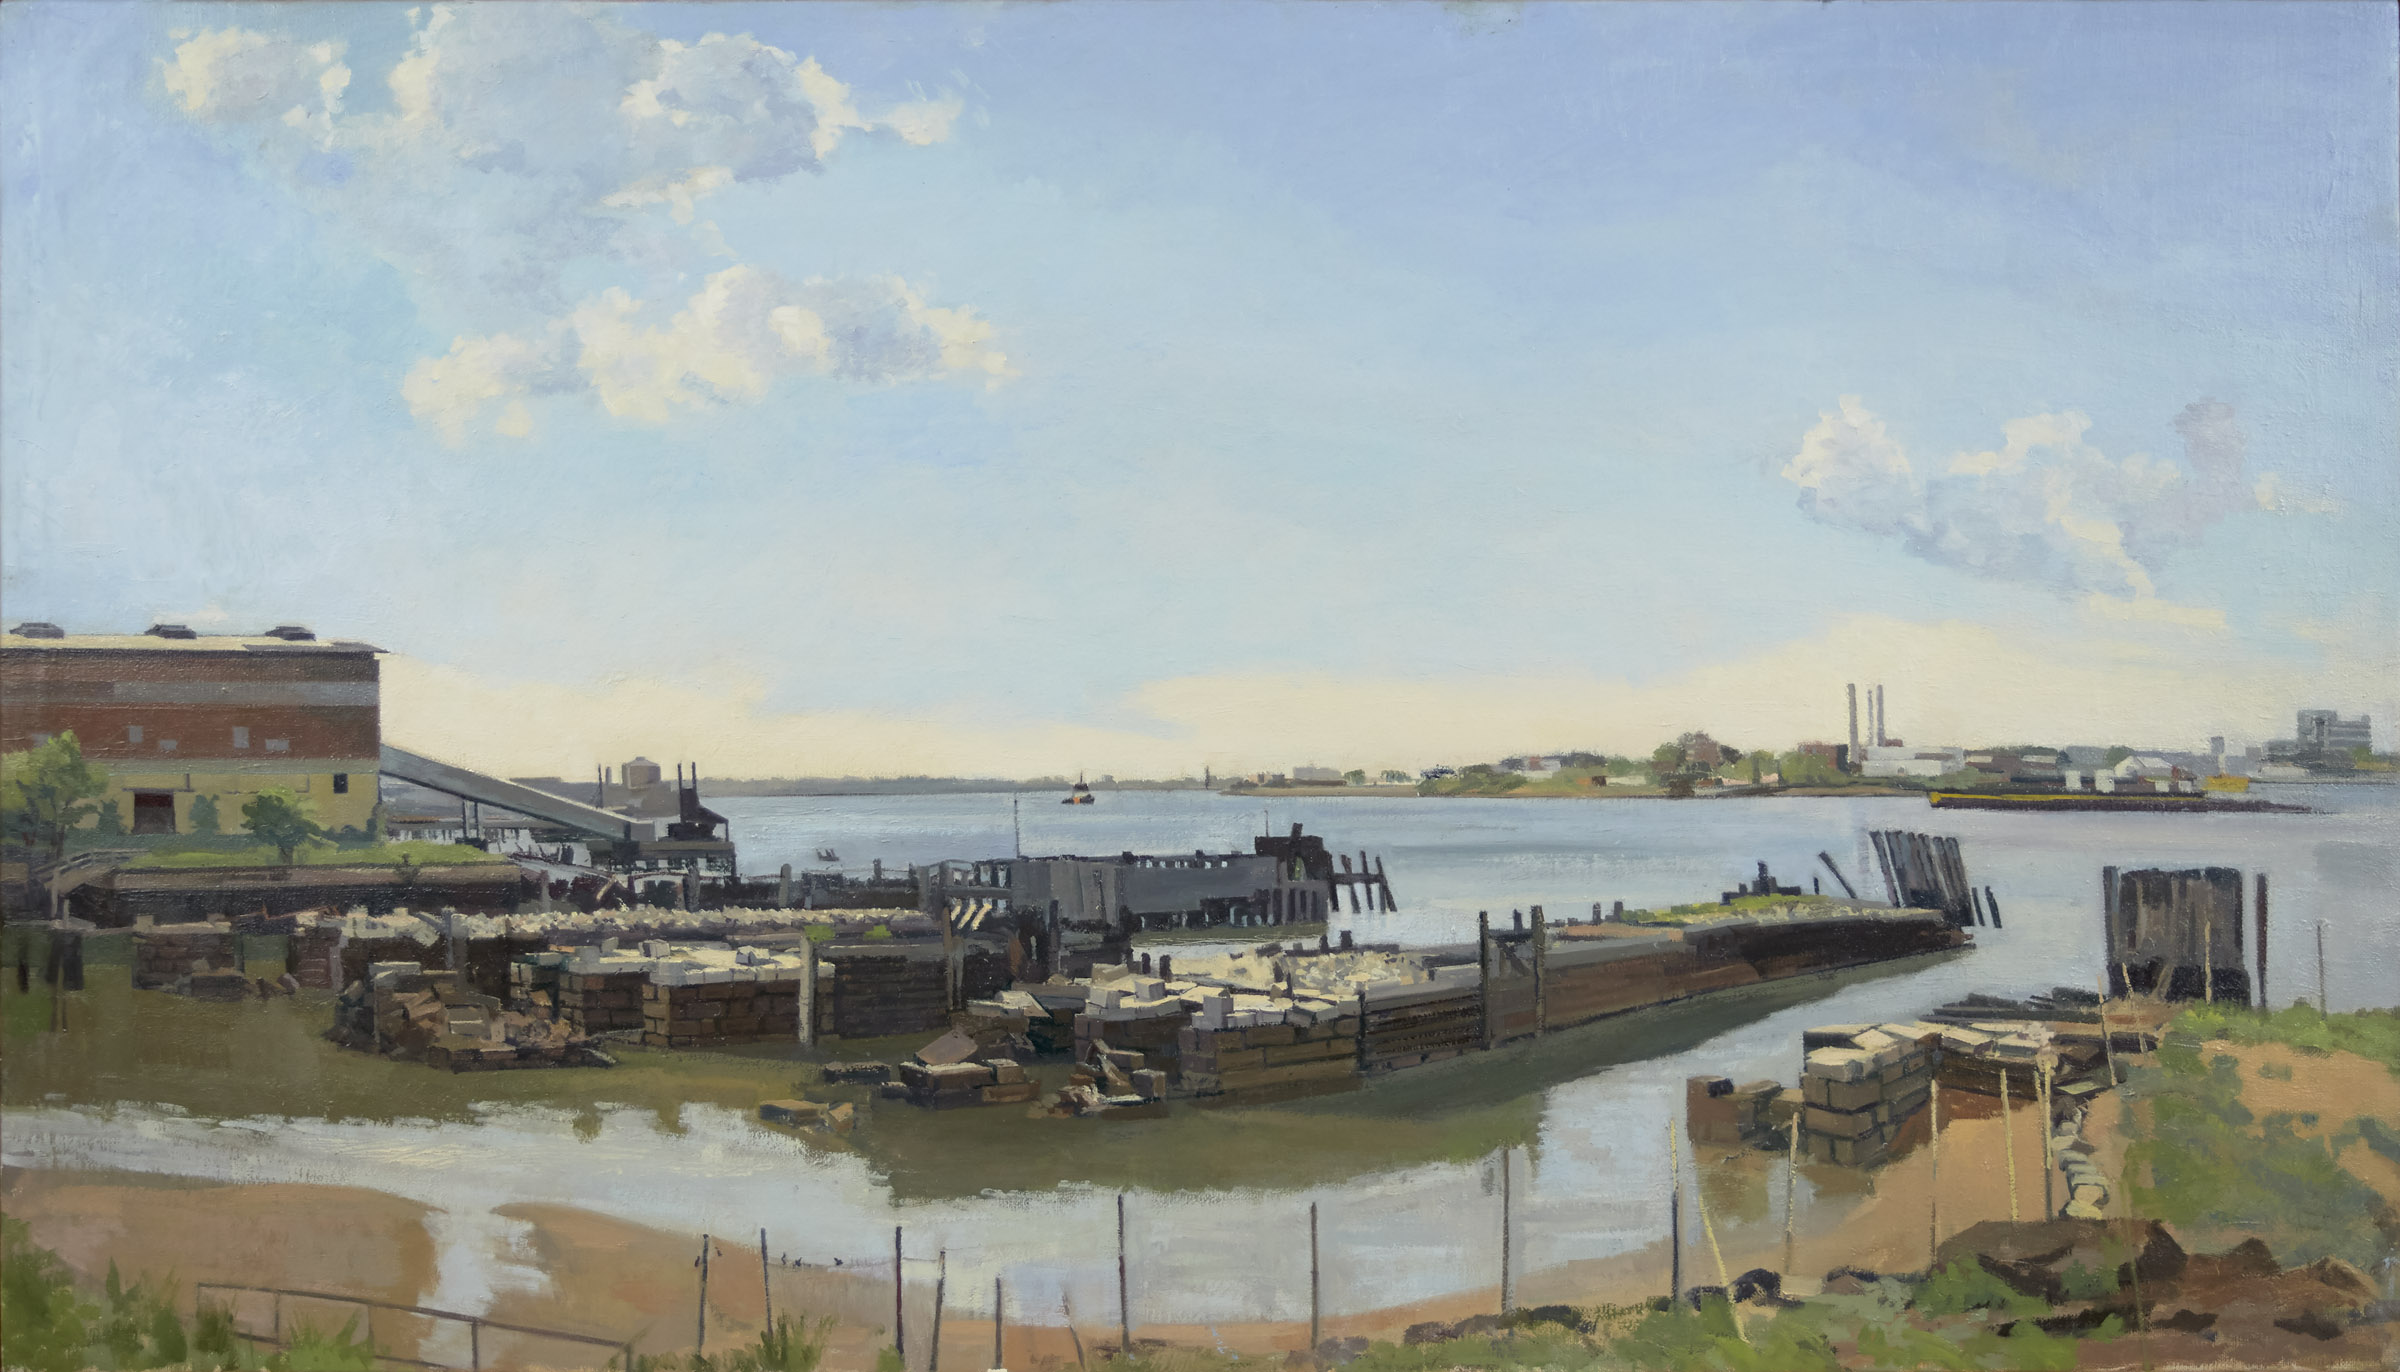 Steve's Train Barge Terminal East | Size 22 x 38 1/2 in. | 2015